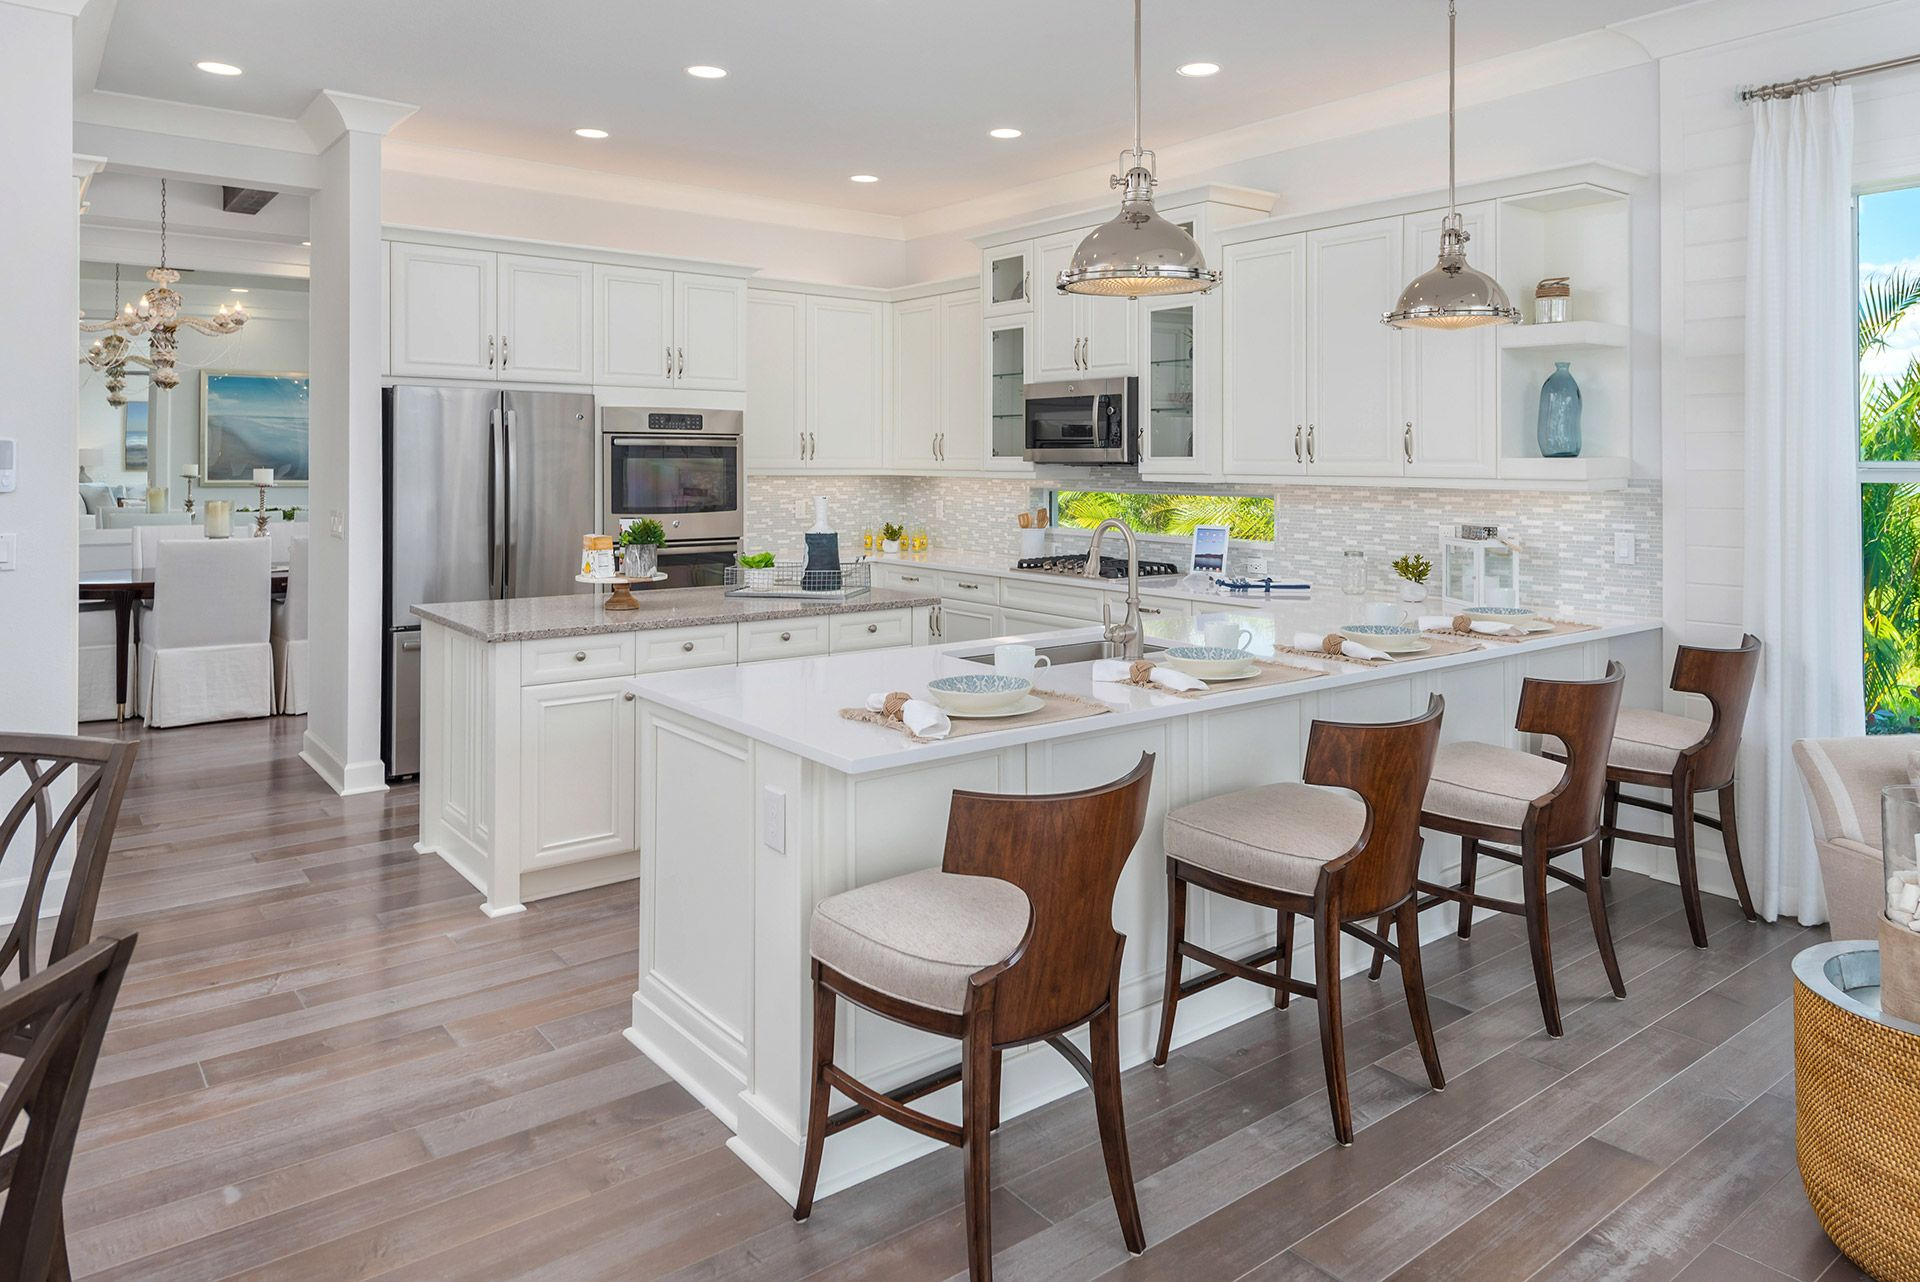 Kitchen featured in the Charleston Grande By GL Homes in Tampa-St. Petersburg, FL